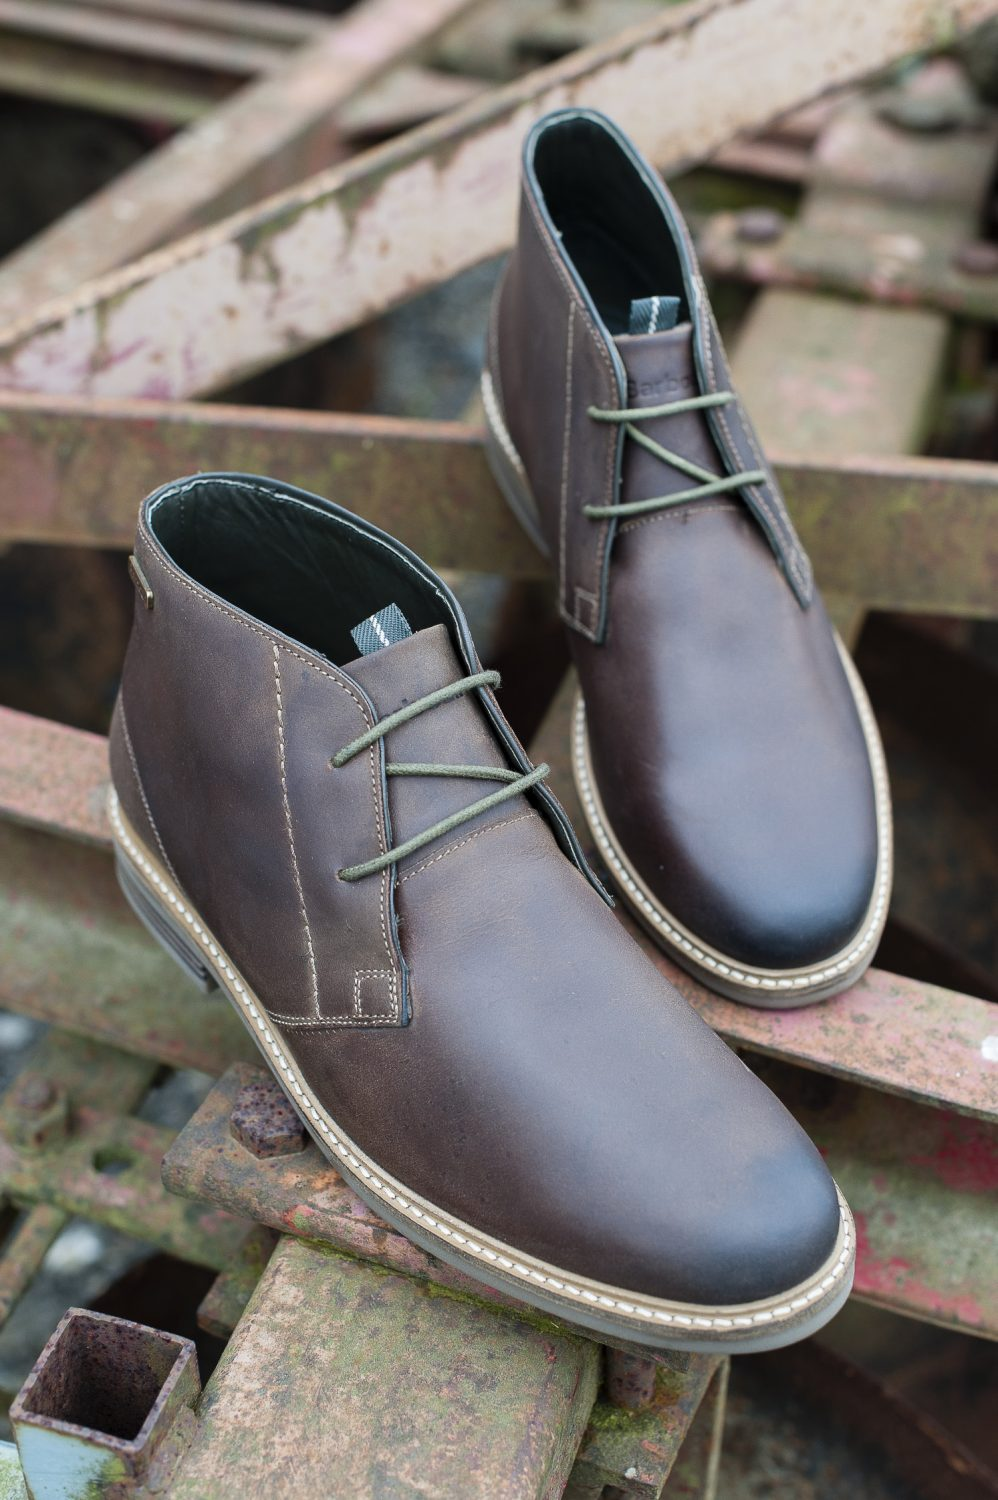 Barbour lace-ups, £125, The Golden Boot, Maidstone thegoldenboot.co.uk